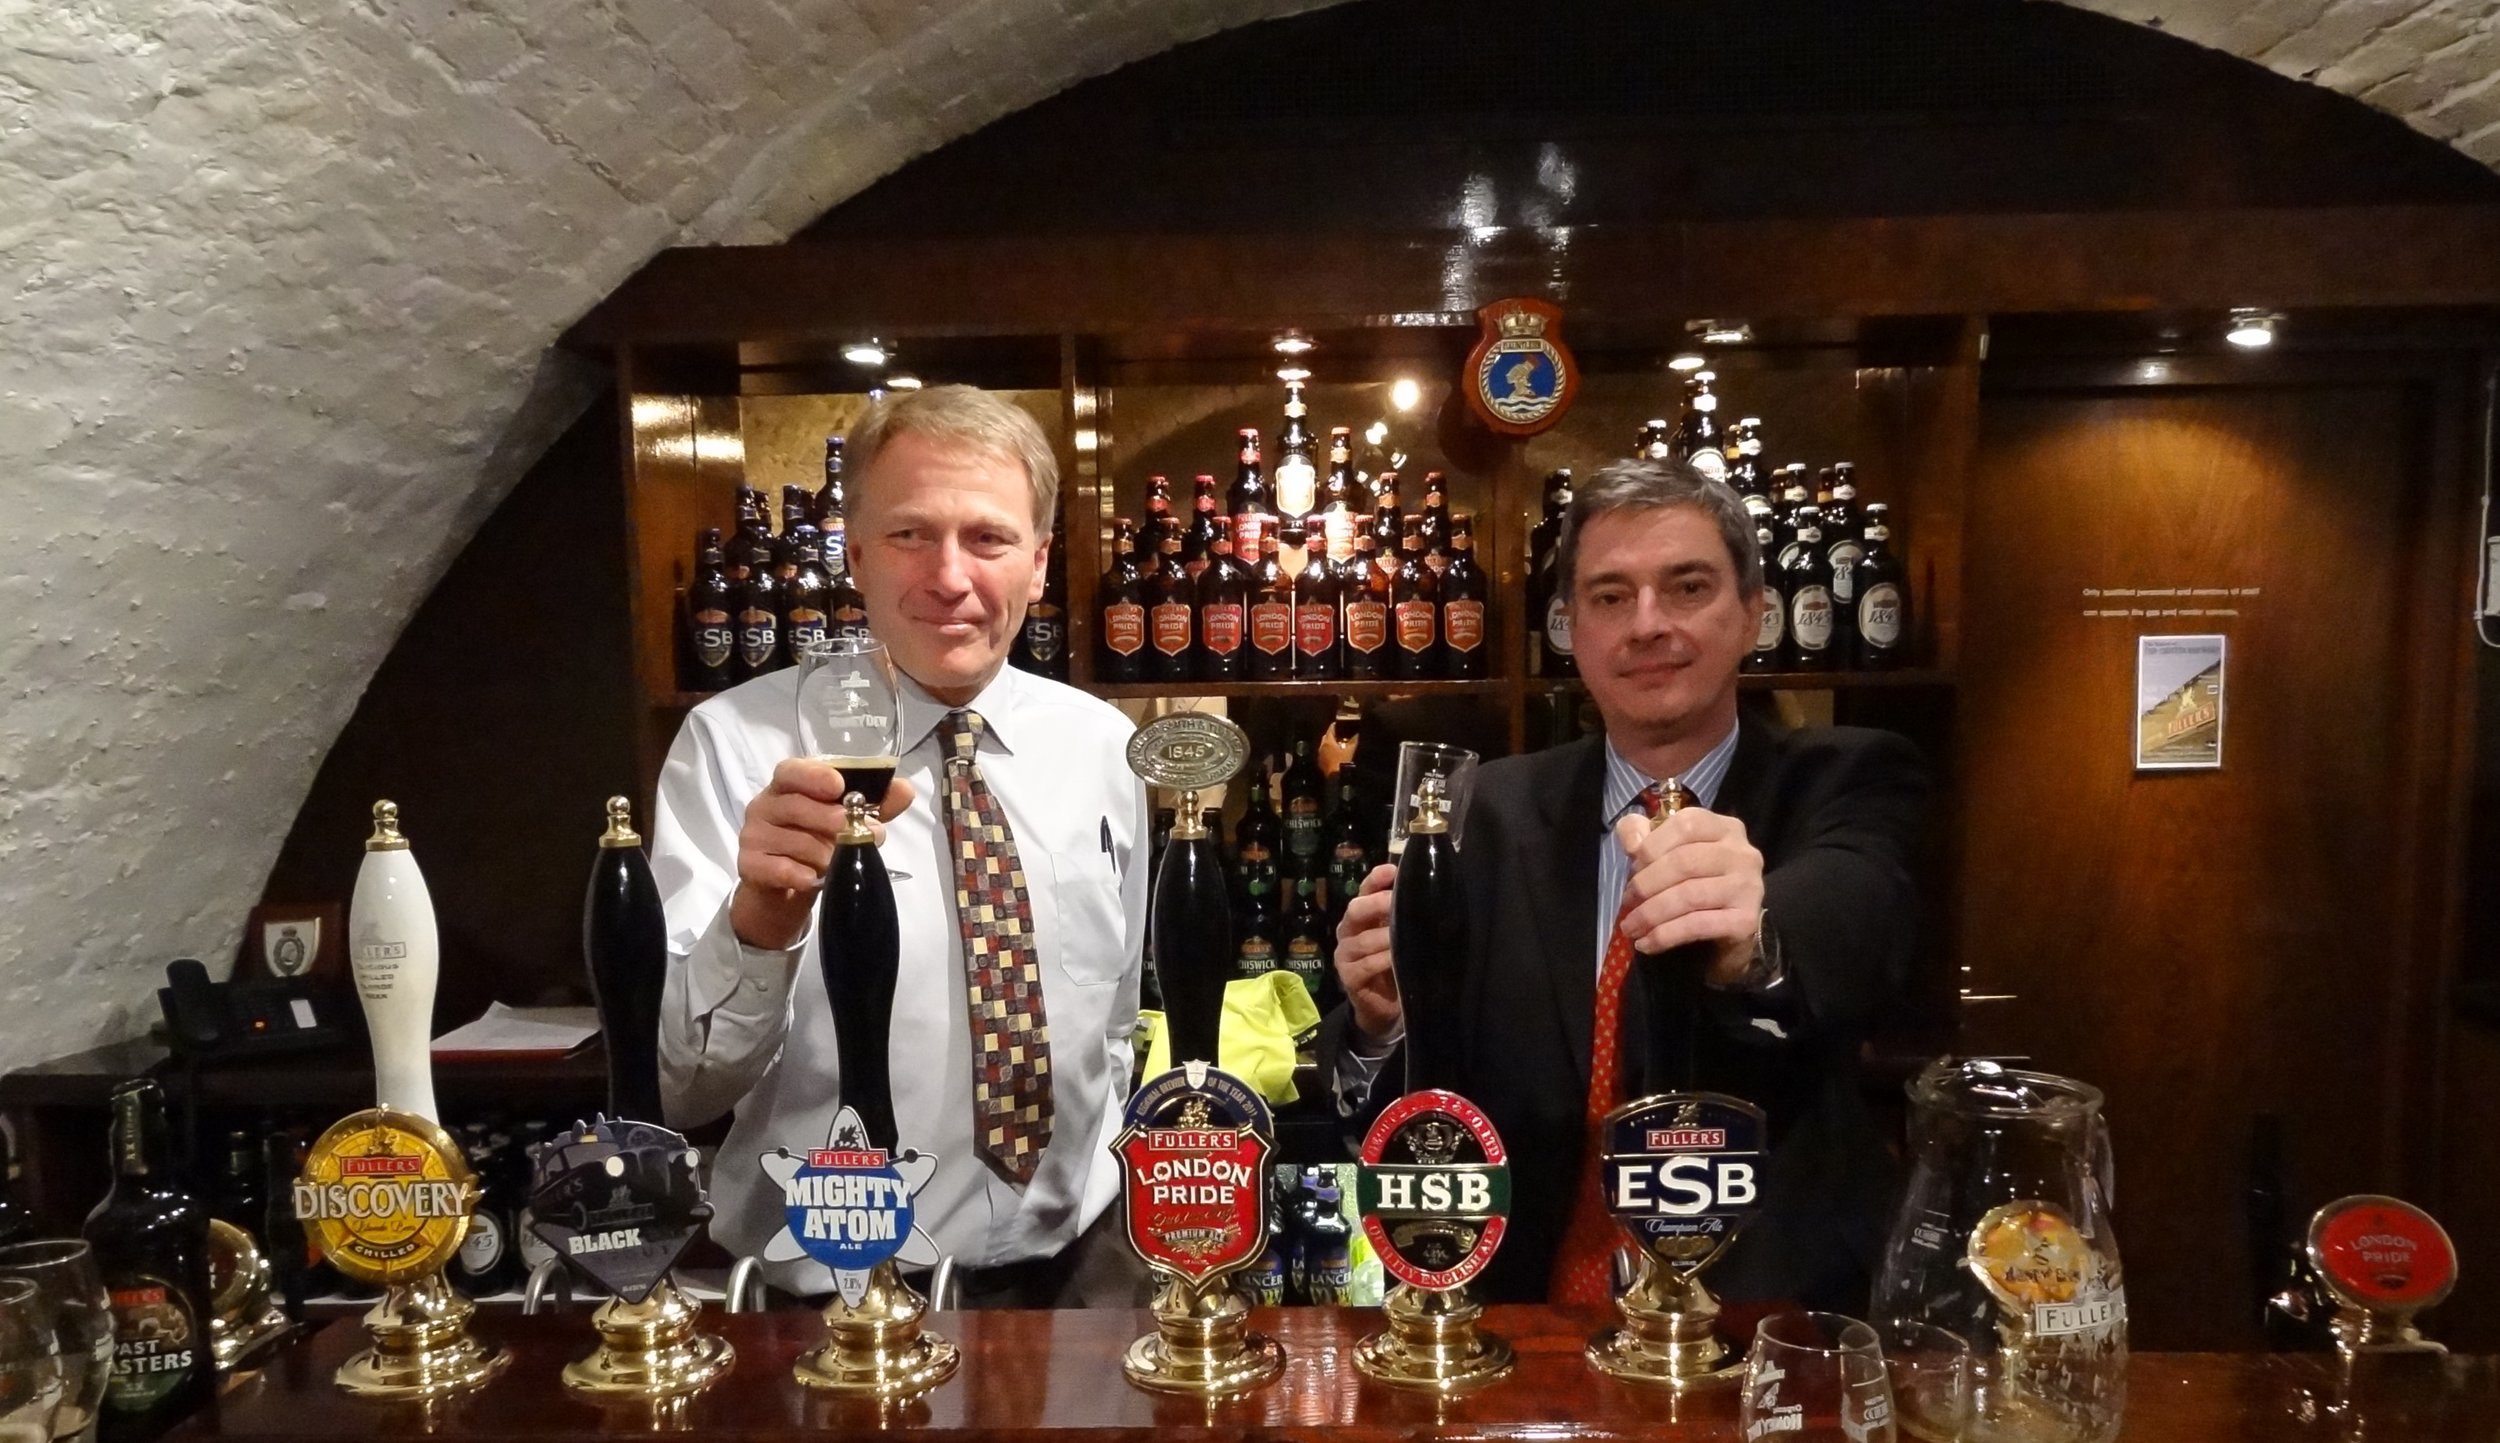 Then head brewer John Keeling (right) with former Young's head brewer (and then-Fuller's brewer) Derek Prentice in 2011.